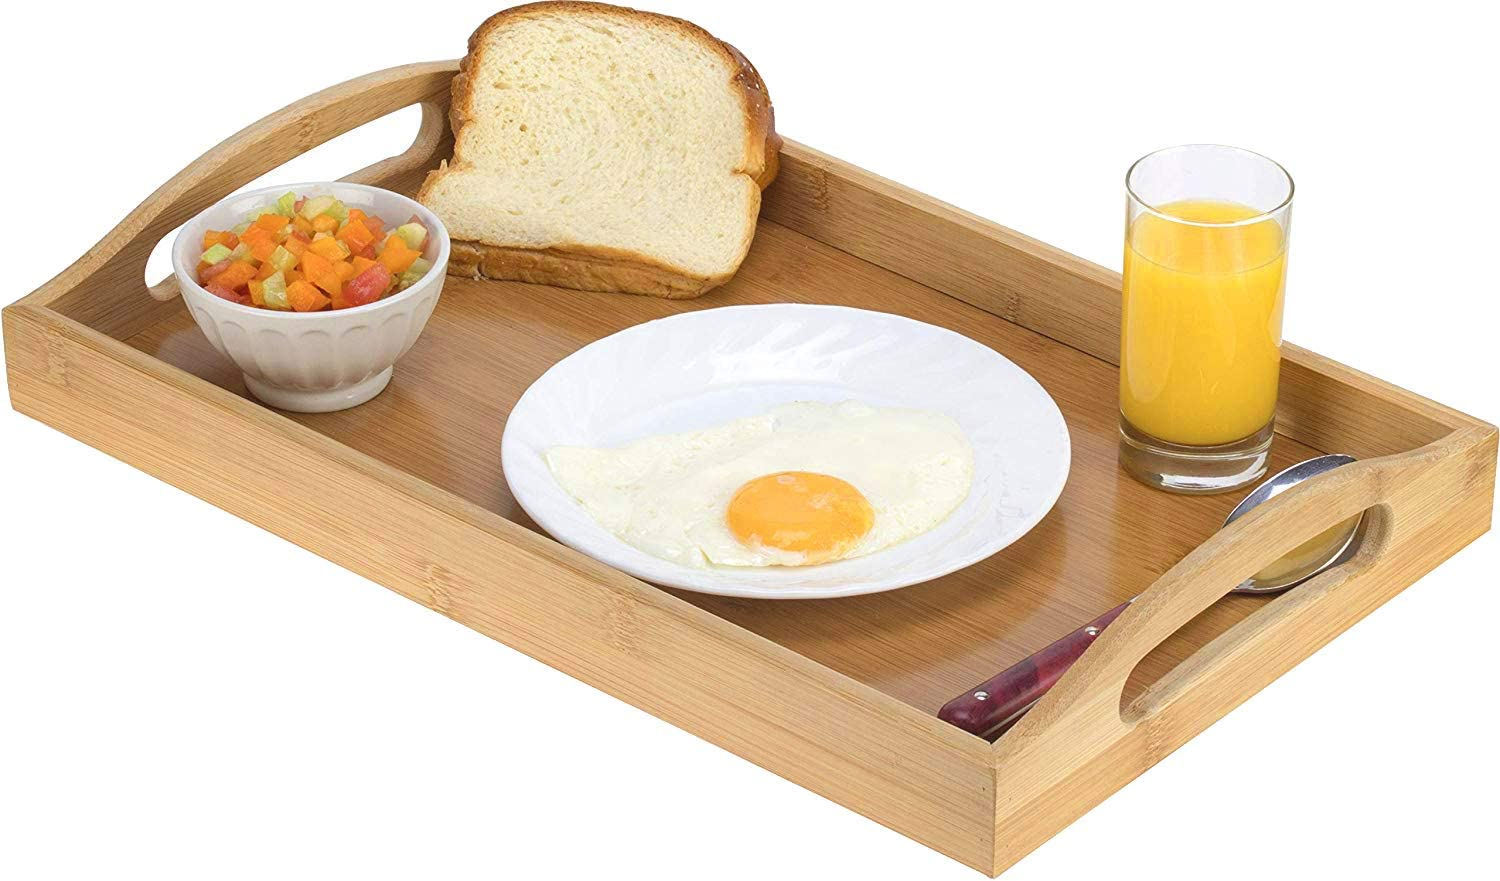 Amazon Com Serving Tray Bamboo Wooden Tray With Handles Great For Dinner Trays Tea Tray Bar Tray Breakfast Tray Or Any Food Tray Good For Parties Or Bed Tray Kitchen